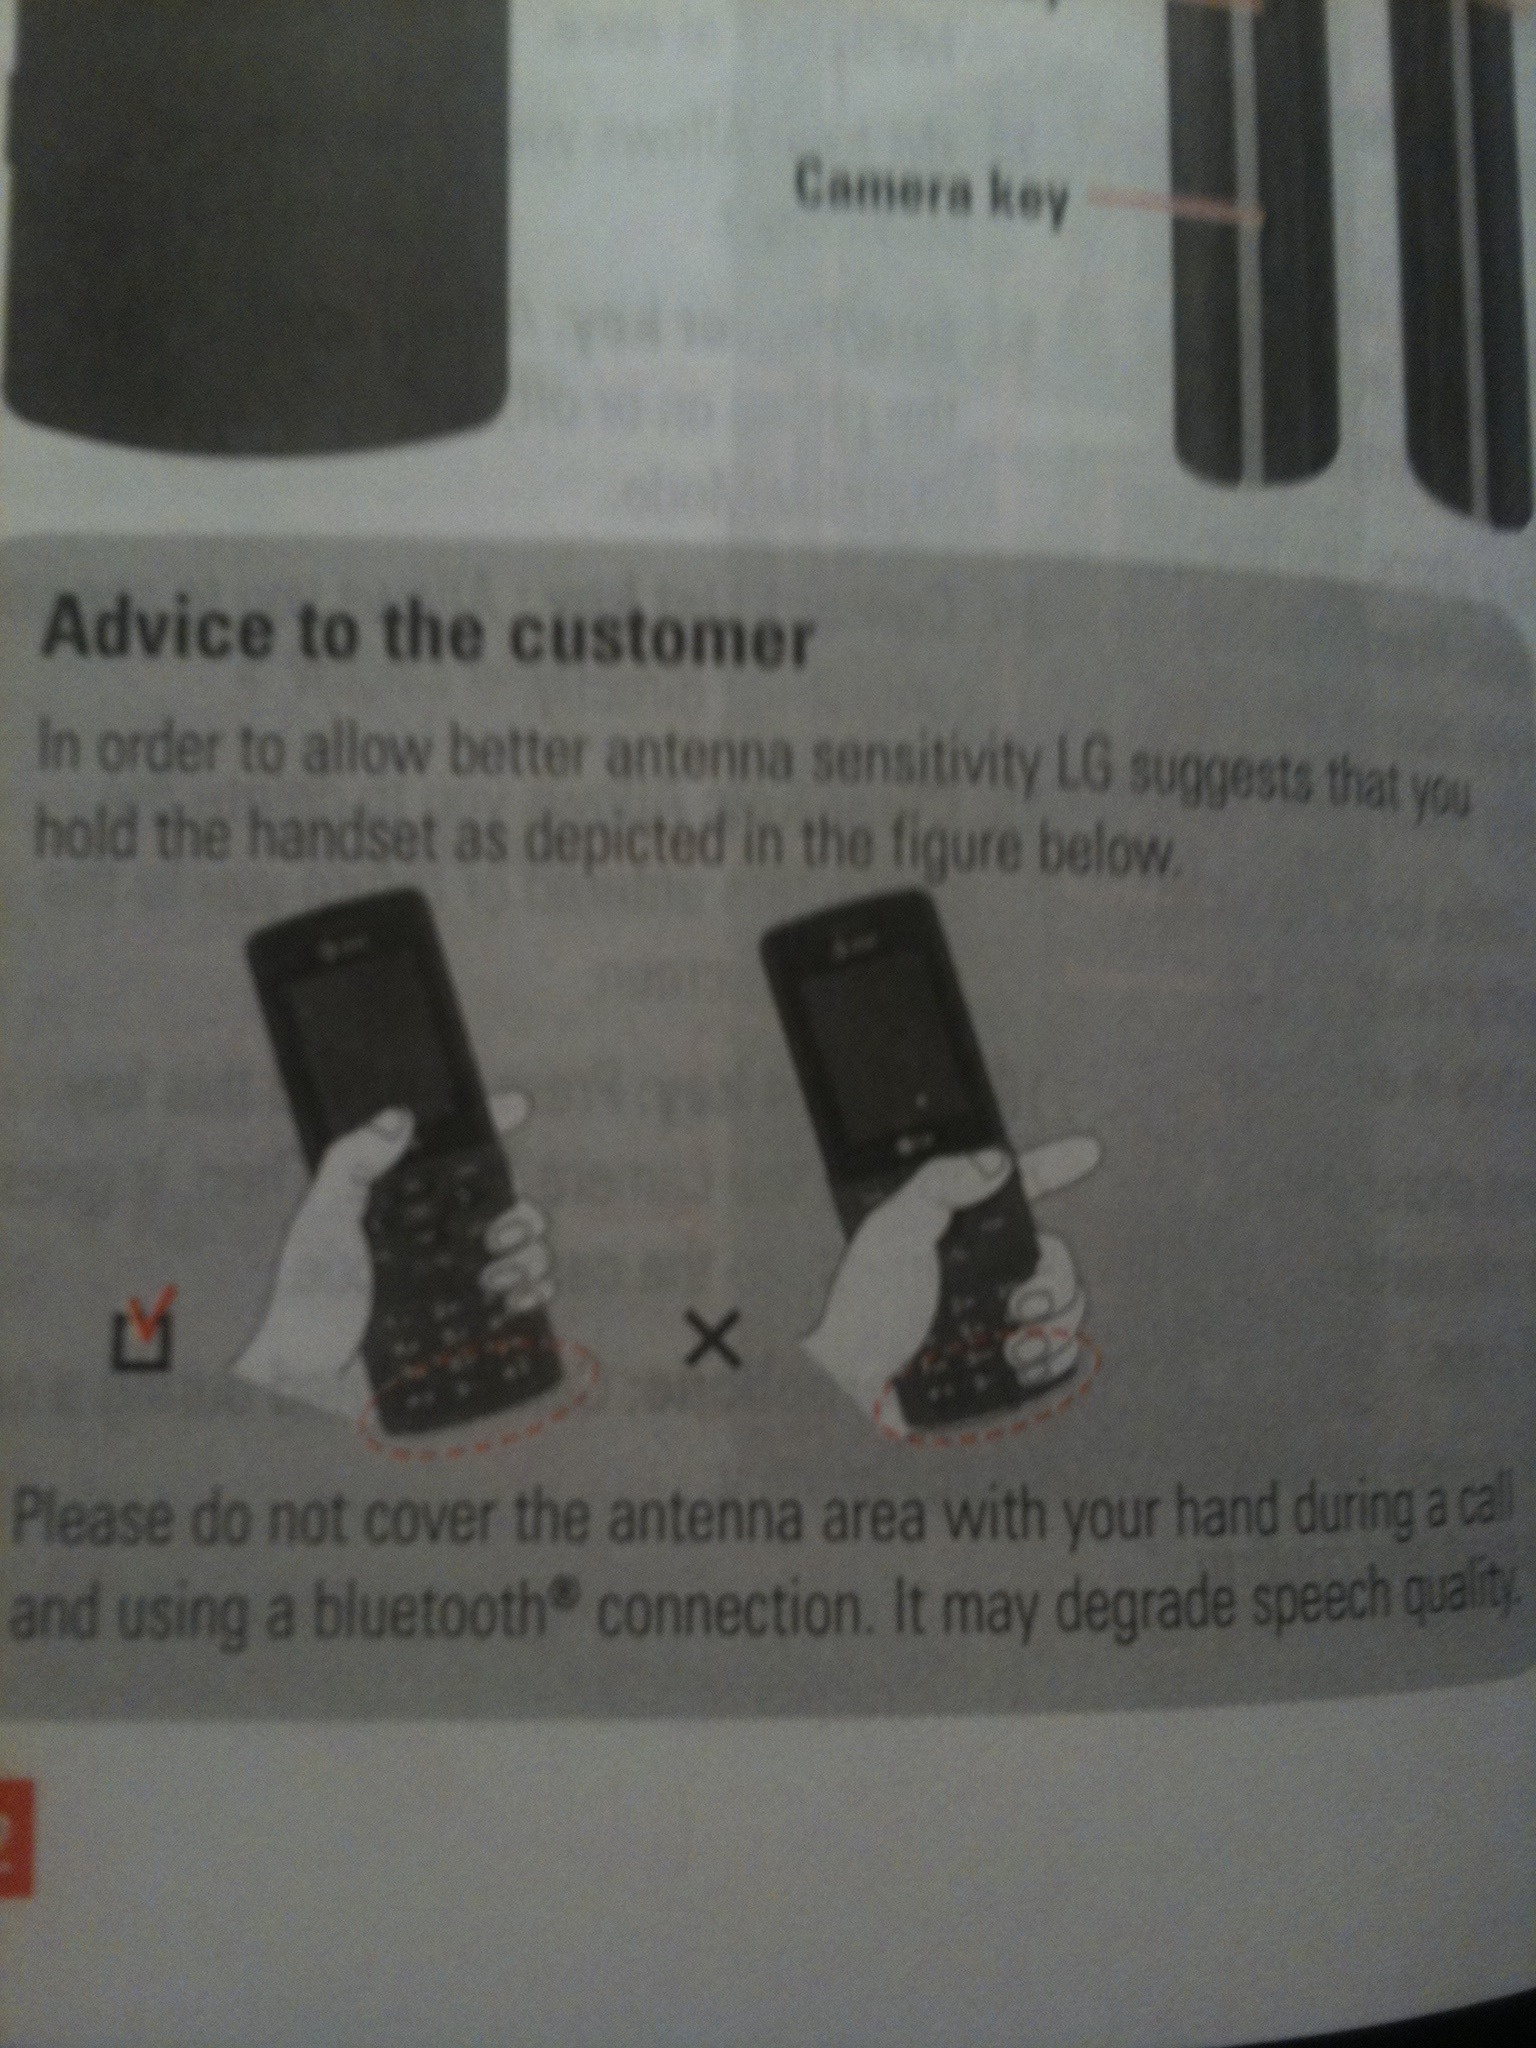 My wife just upgraded to a simple LG slider cellphone. The instructions (pre-iPhone 4) included this #deathgrip warning diagram.